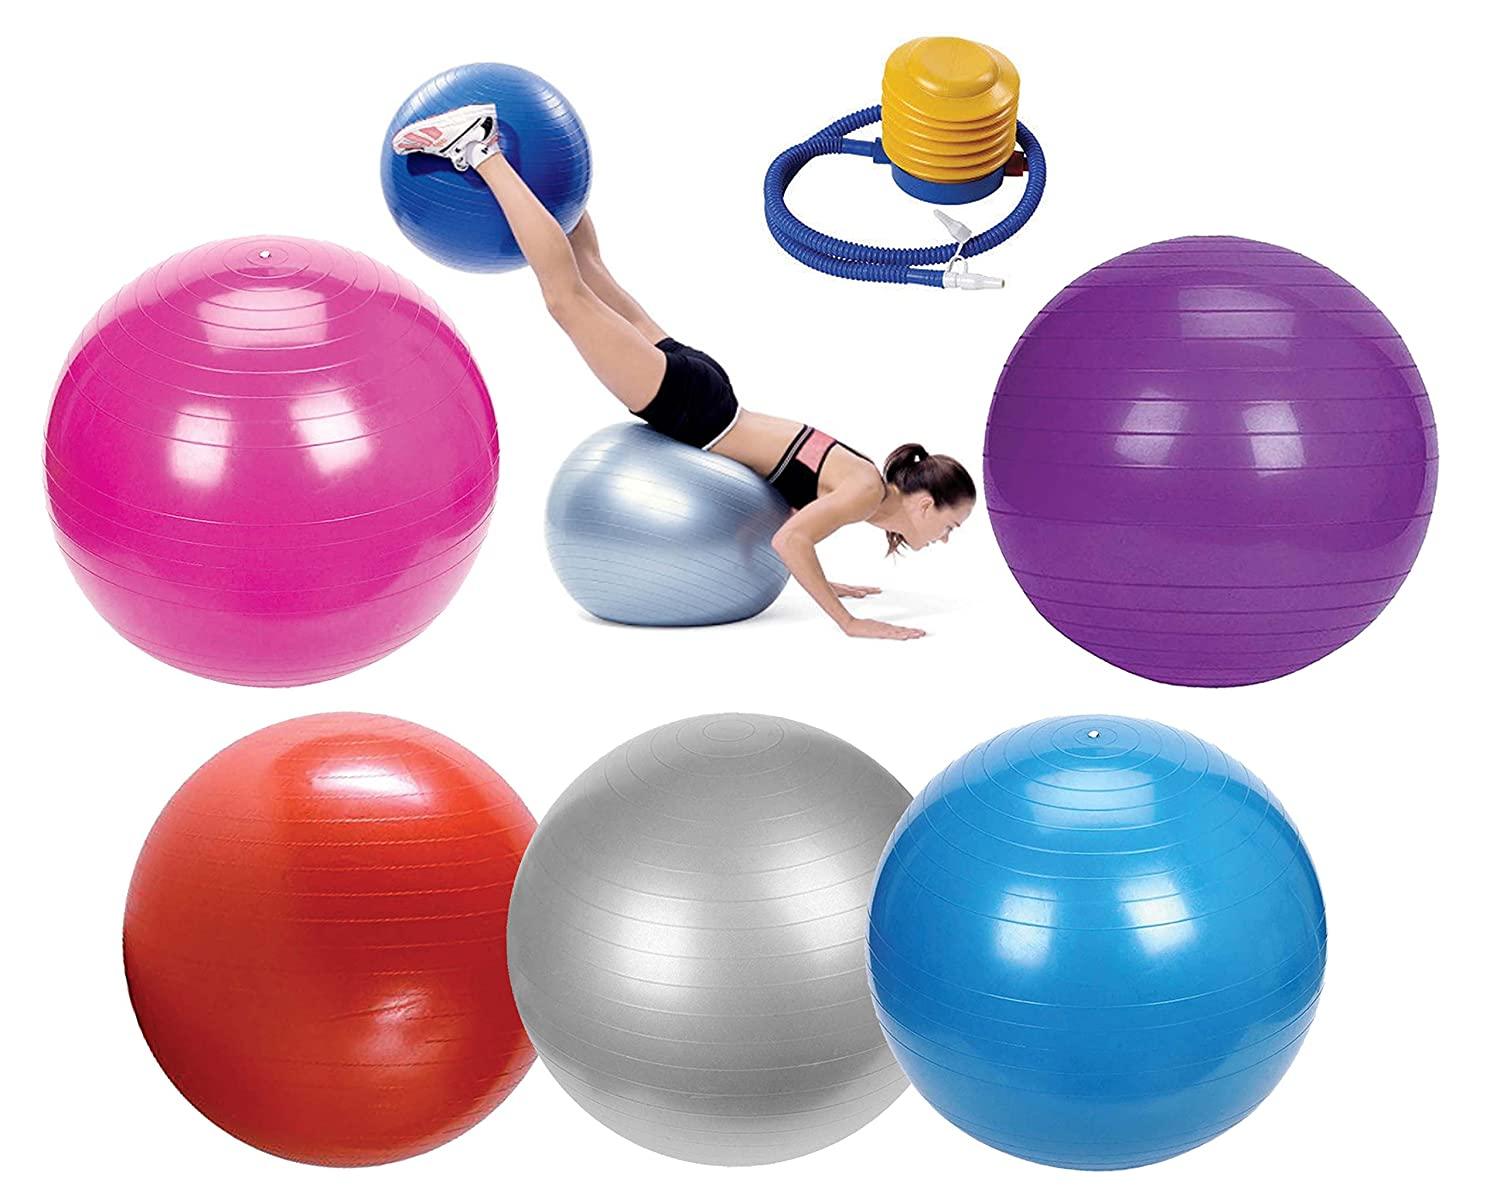 EVER RICH ® EXERCISE GYM YOGA SWISS BALL FITNESS PREGNANCY BIRTHING BALL 65CM + FOOT PUMP